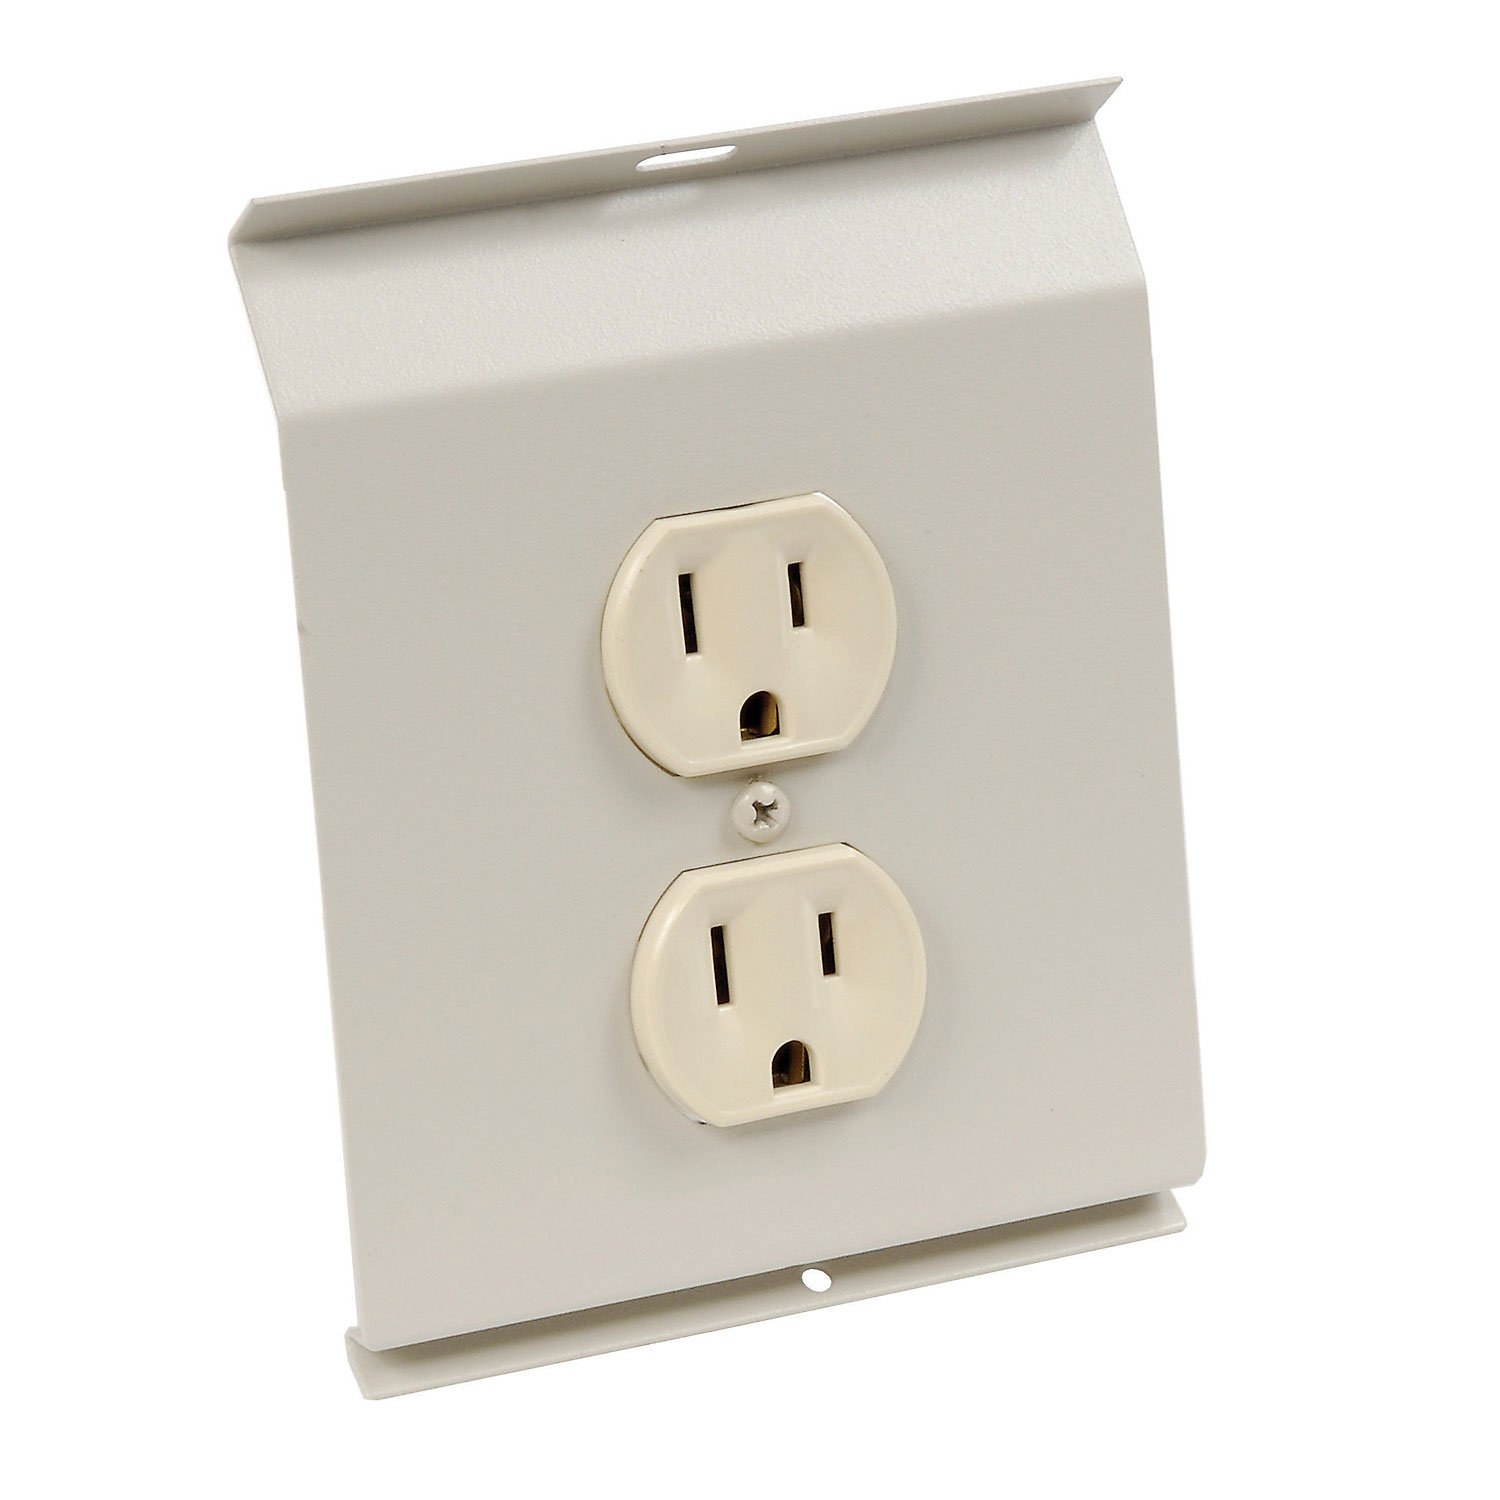 TPI BDR115 Receptacle Section for Series 2900C Electric Baseboard 15 Amps TPI Corporation Ivory